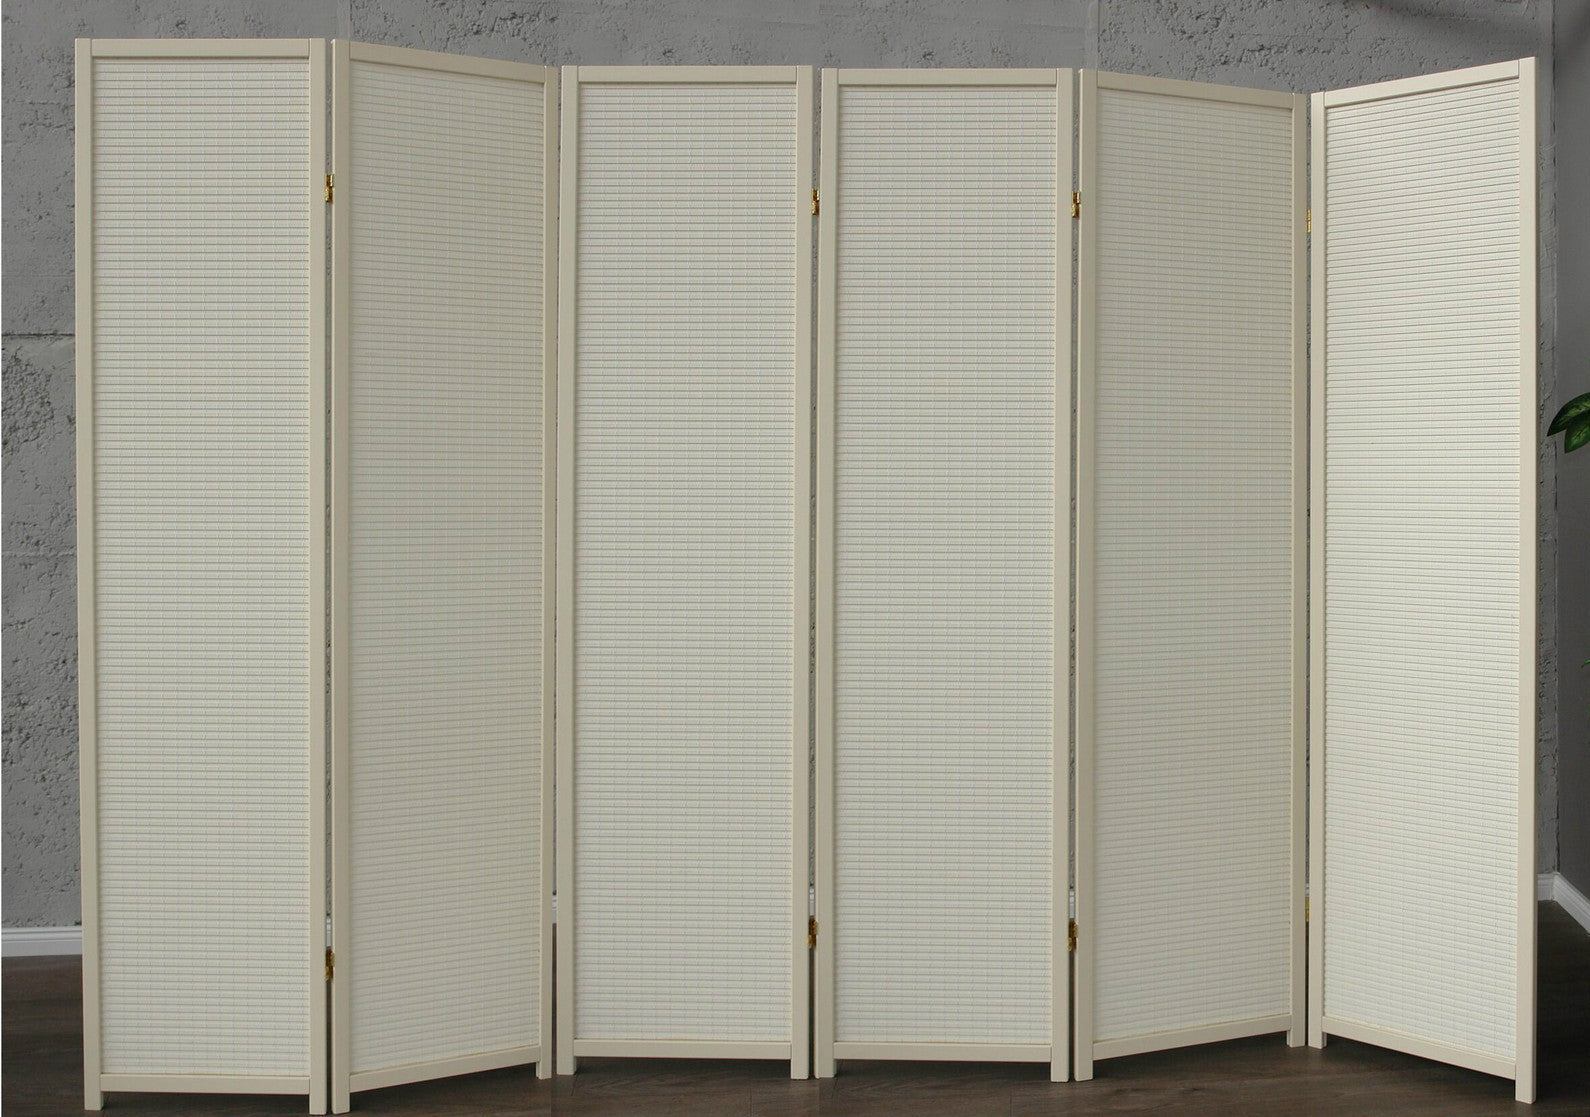 Cremo Wood Room Divider - 6 Panel